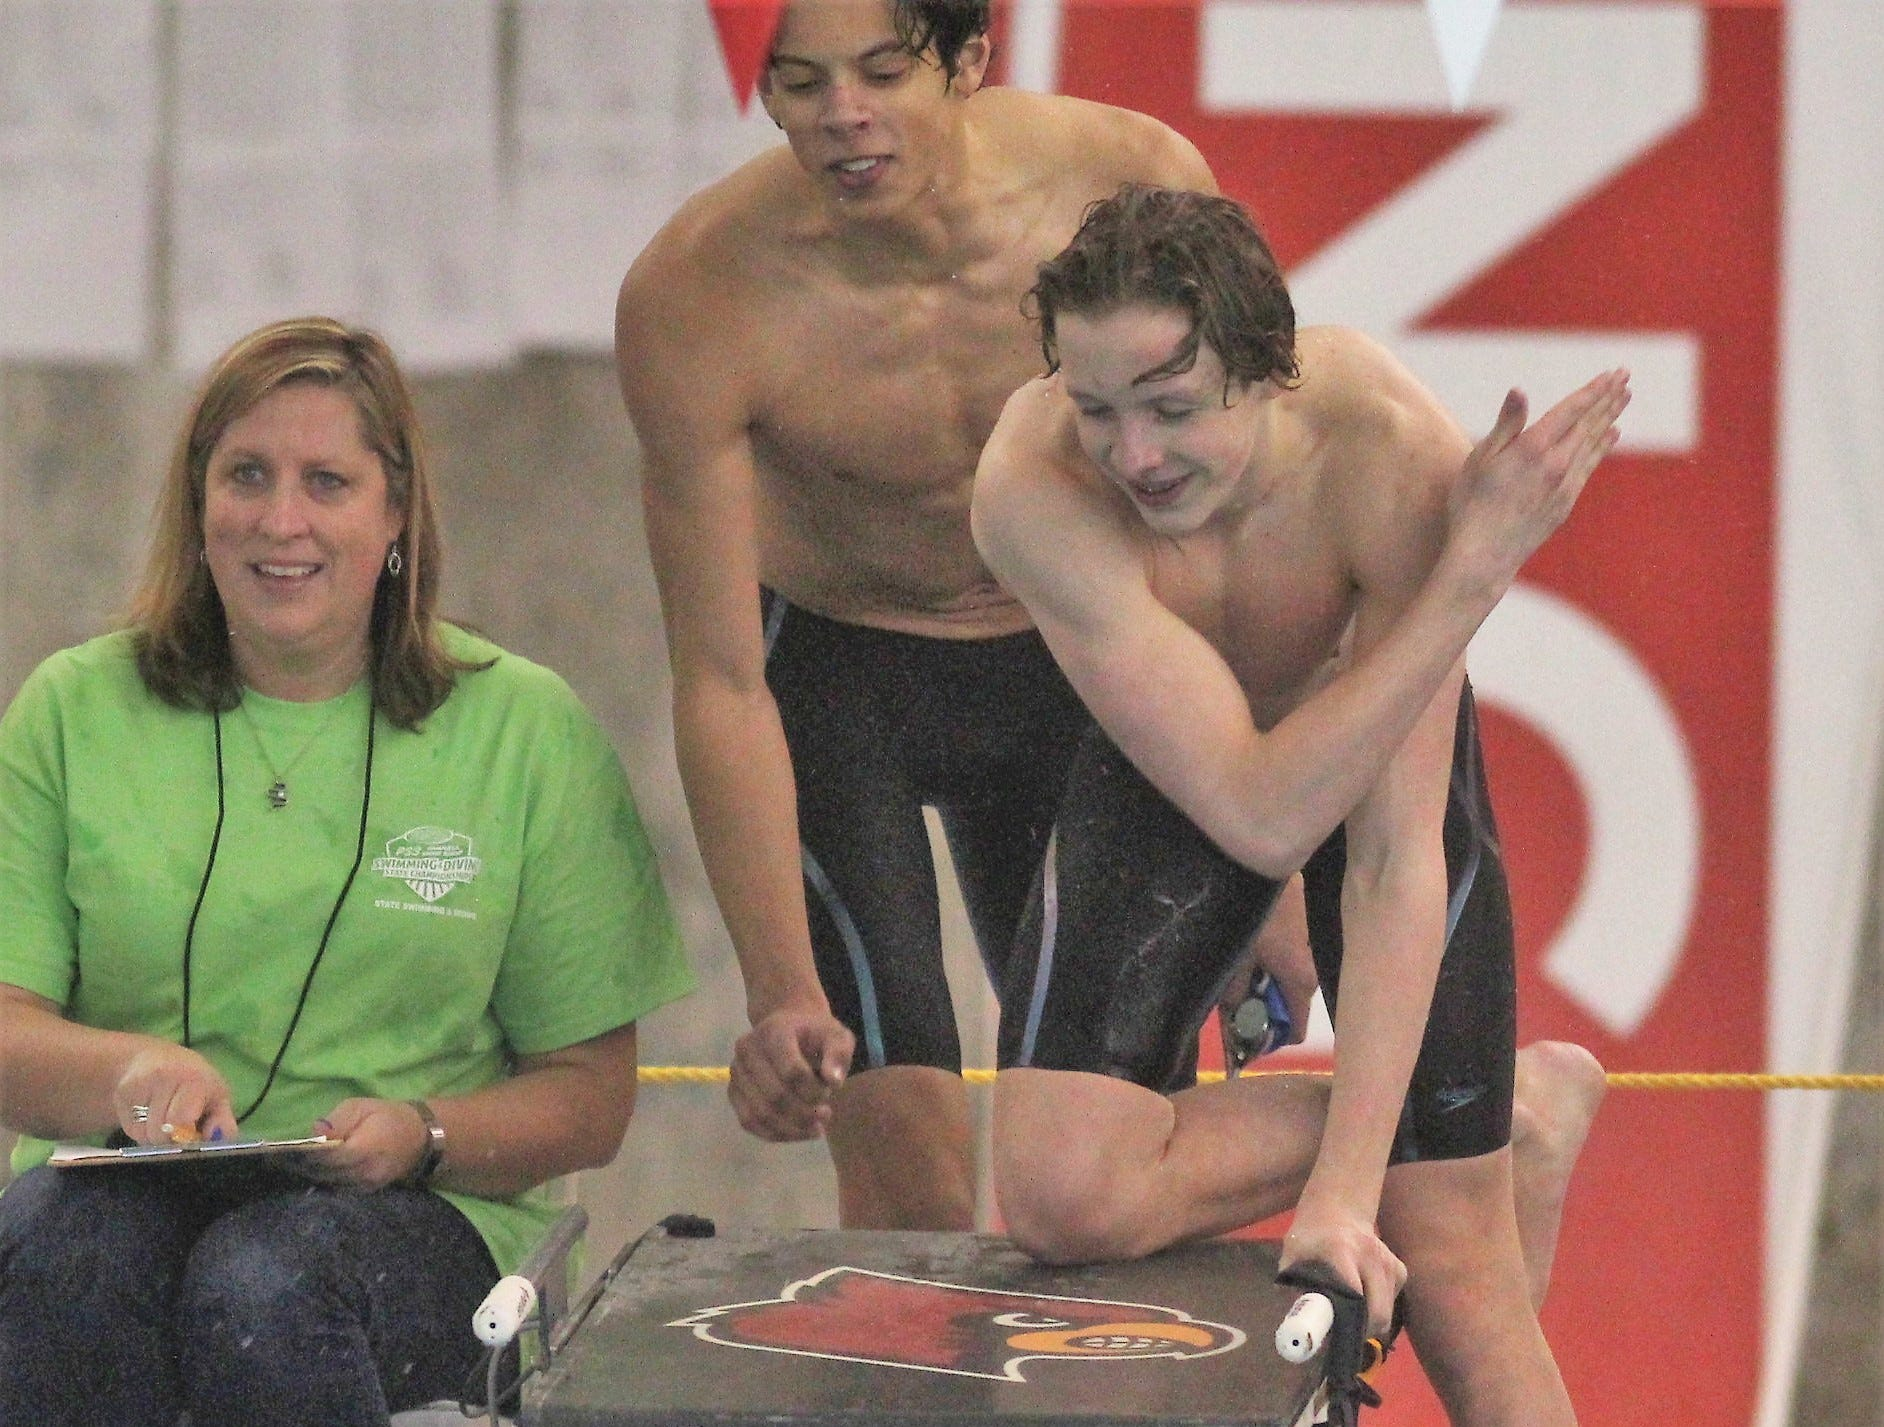 Highlands swimmers celebrate with Brendan Conley after they finished second in the 400 free relay with a school record time, 2019 state meet.